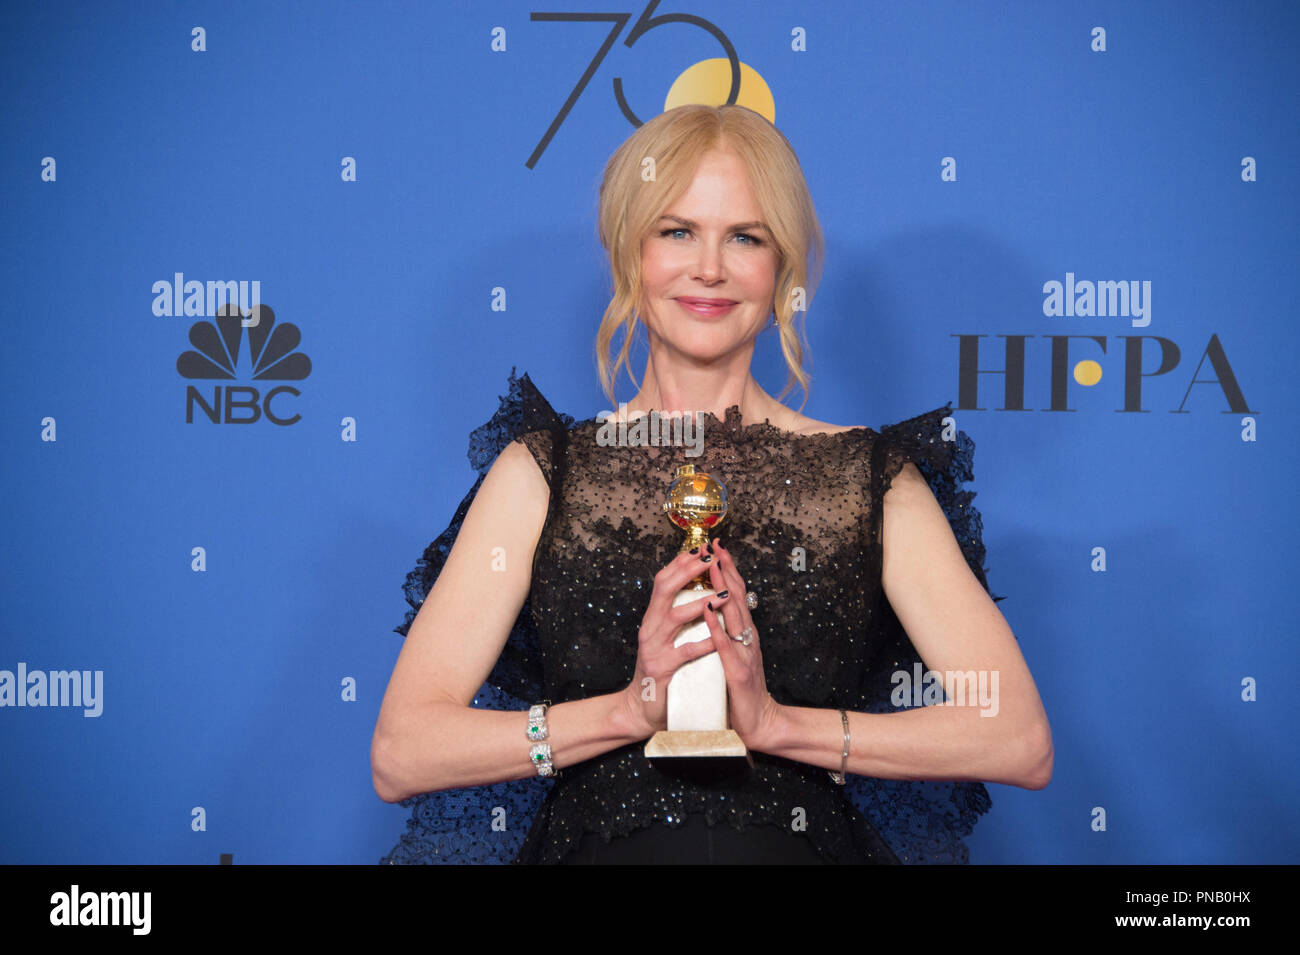 """After winning the category of BEST PERFORMANCE BY AN ACTRESS IN A LIMITED SERIES OR A MOTION PICTURE MADE FOR TELEVISION for her role in """"Big Little Lies,"""" actress Nicole Kidman poses backstage in the press room with her Golden Globe Award at the 75th Annual Golden Globe Awards at the Beverly Hilton in Beverly Hills, CA on Sunday, January 7, 2018. Stock Photo"""